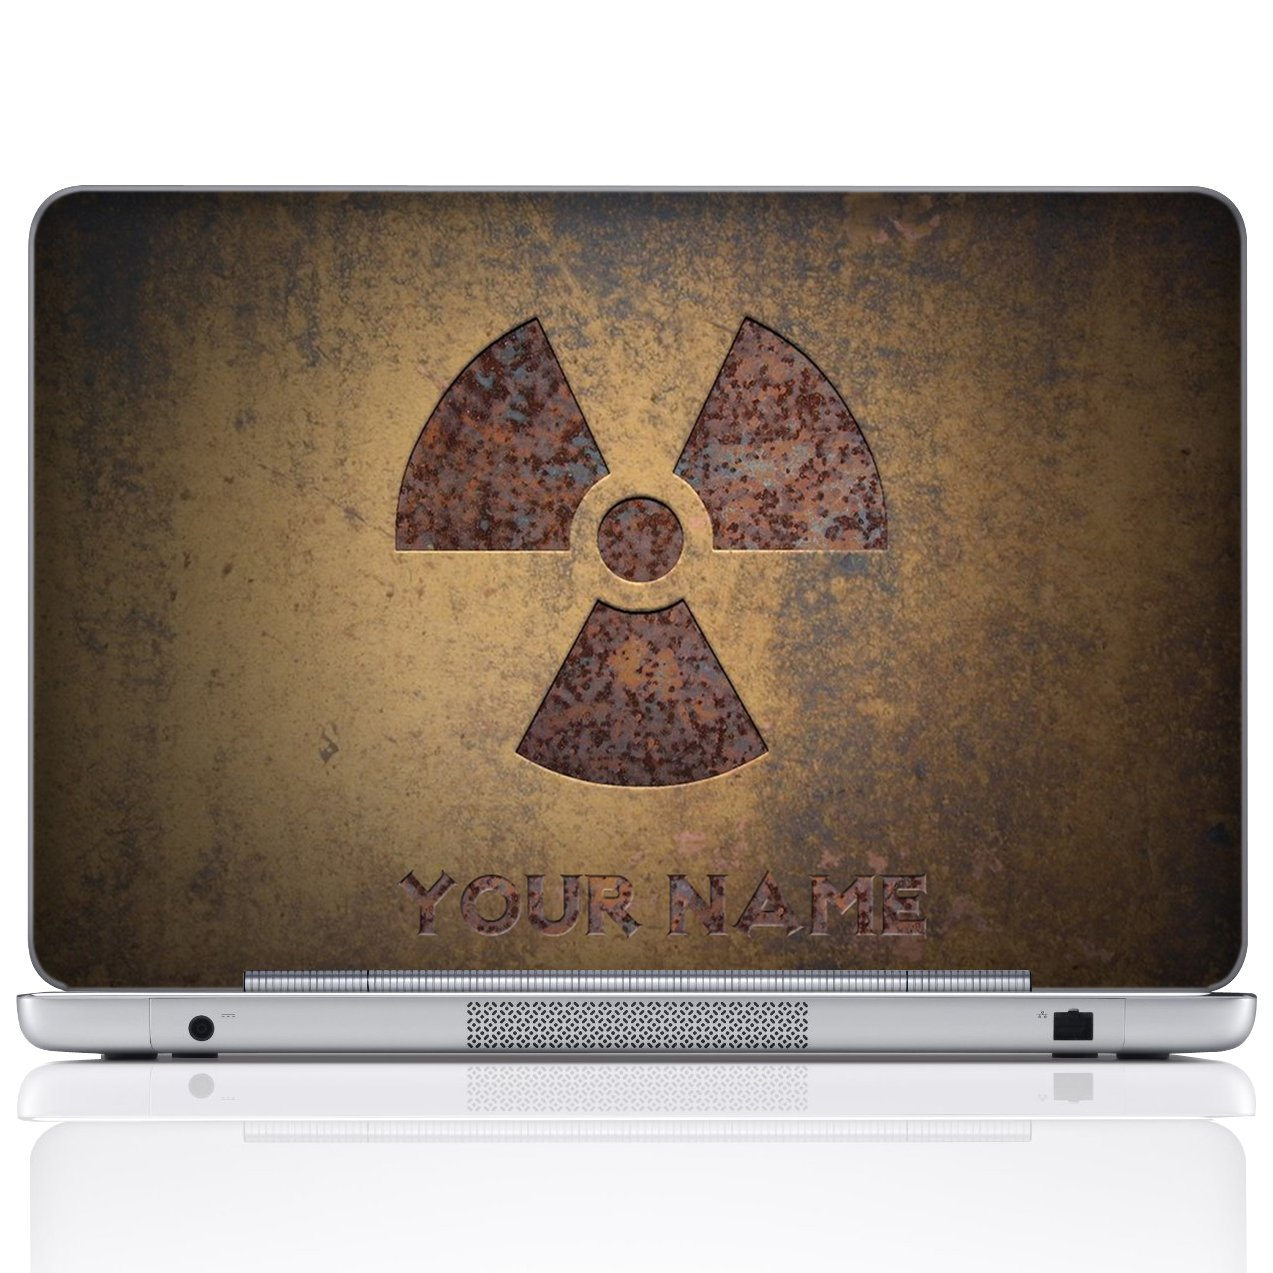 Meffort Inc Personalized Laptop Notebook Notebook Skin Sticker Cover Art Decal, Customize Your Name (17 Inch, Brown Radioactive)